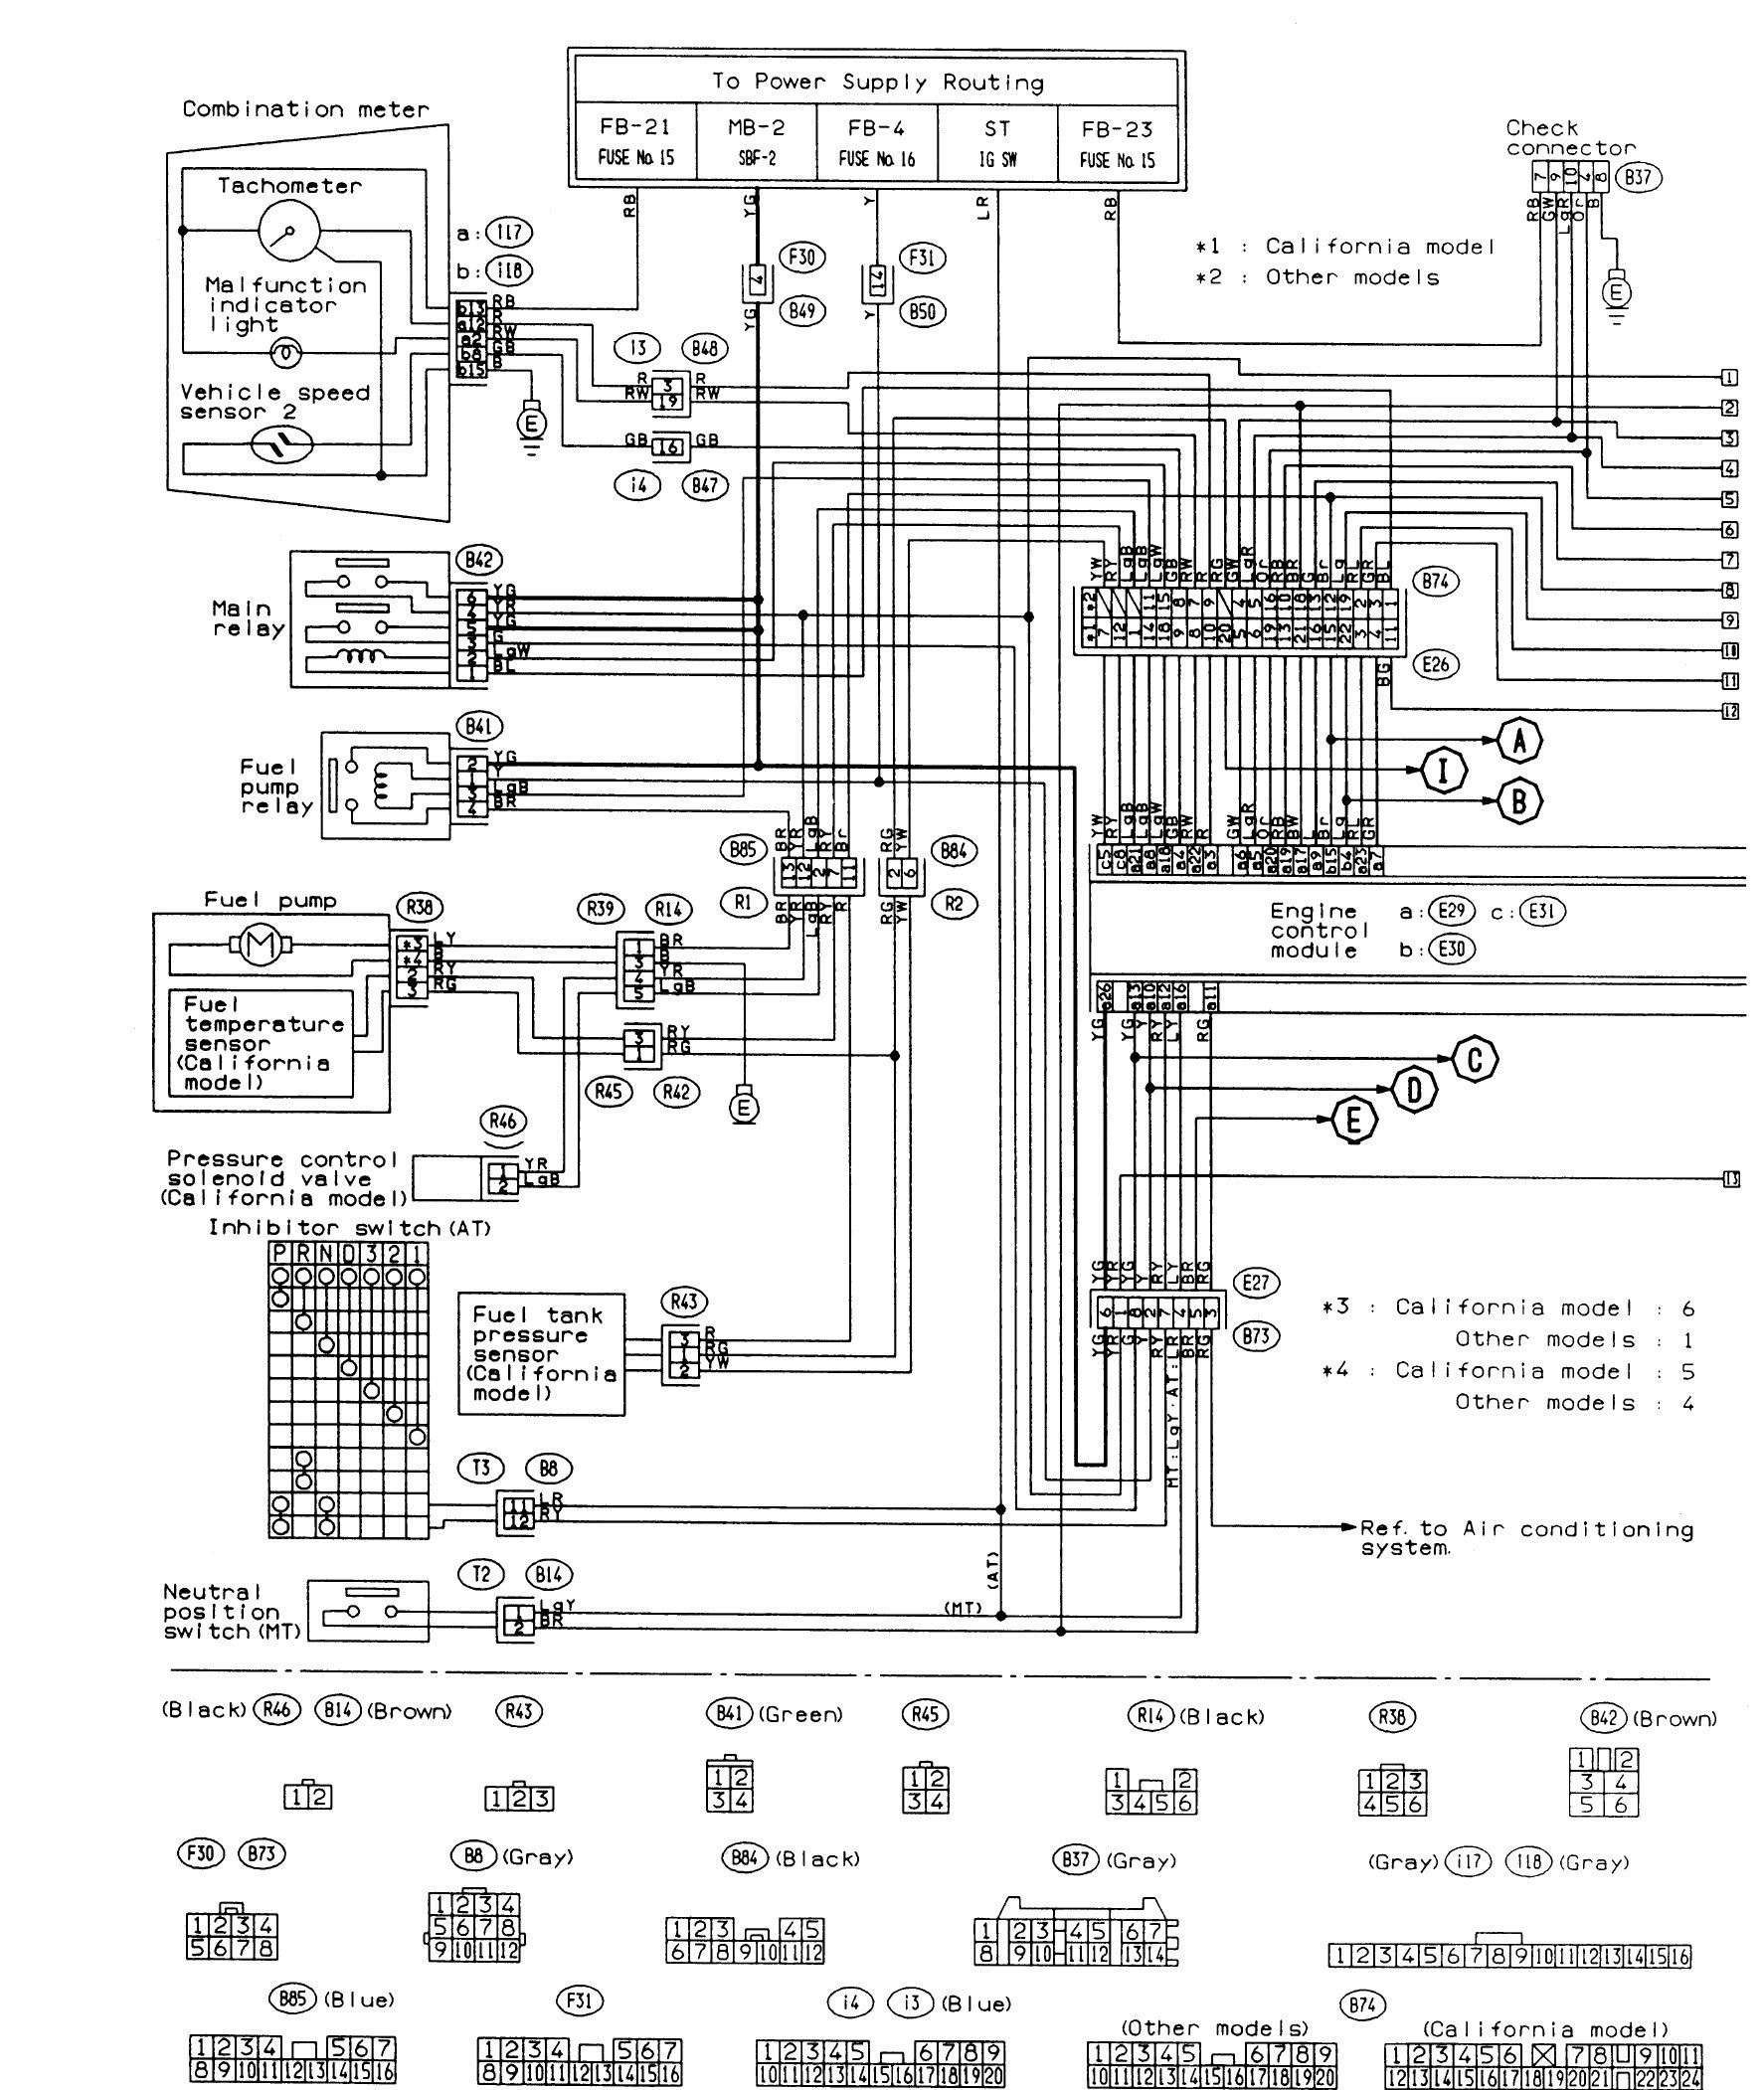 Subaru Wiring Diagram Color Codes Subaru Subaru Impreza Electrical Diagram